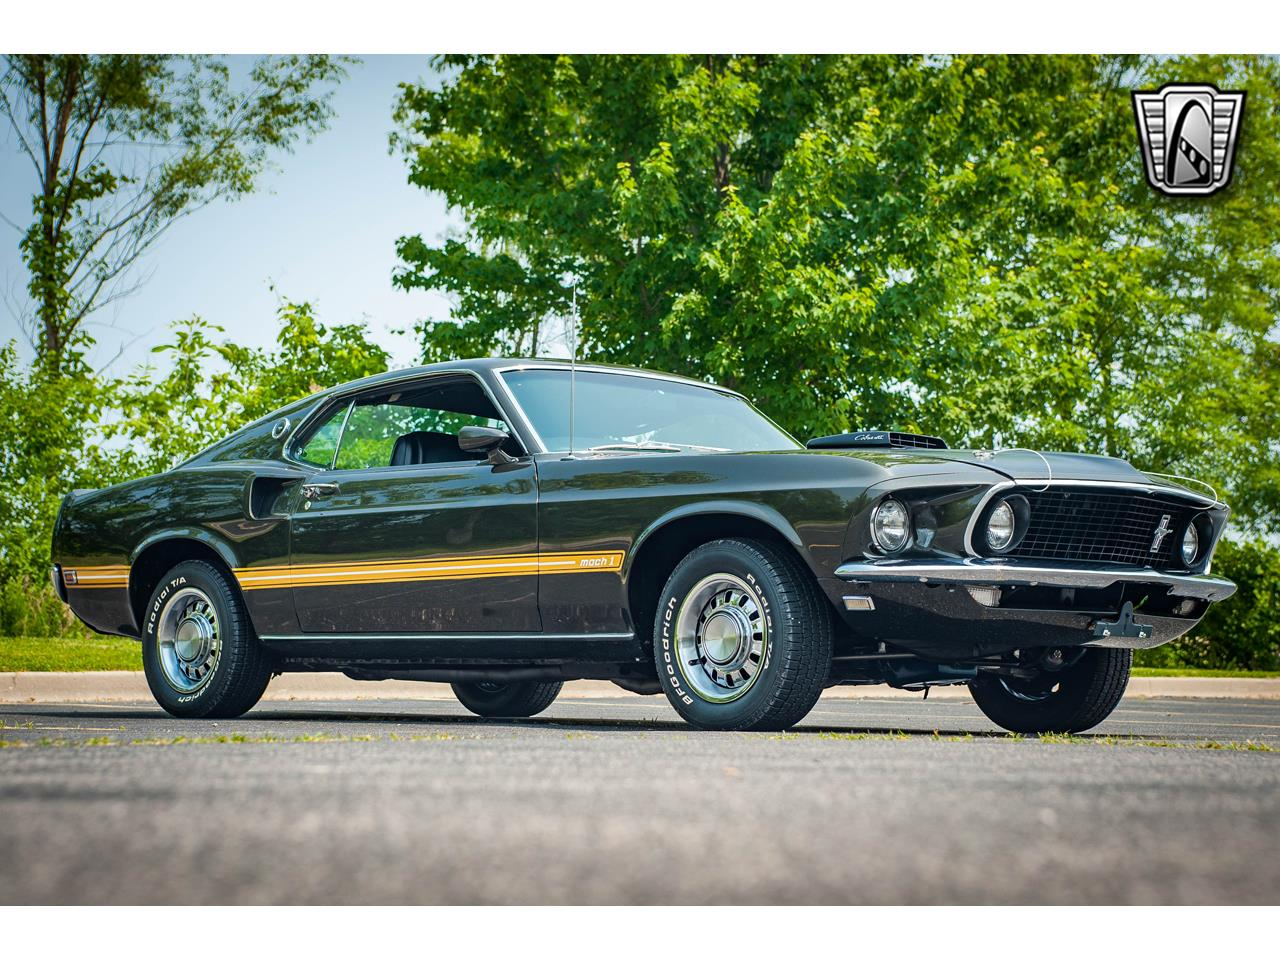 Large Picture of Classic '69 Ford Mustang located in Illinois Offered by Gateway Classic Cars - St. Louis - QBA2